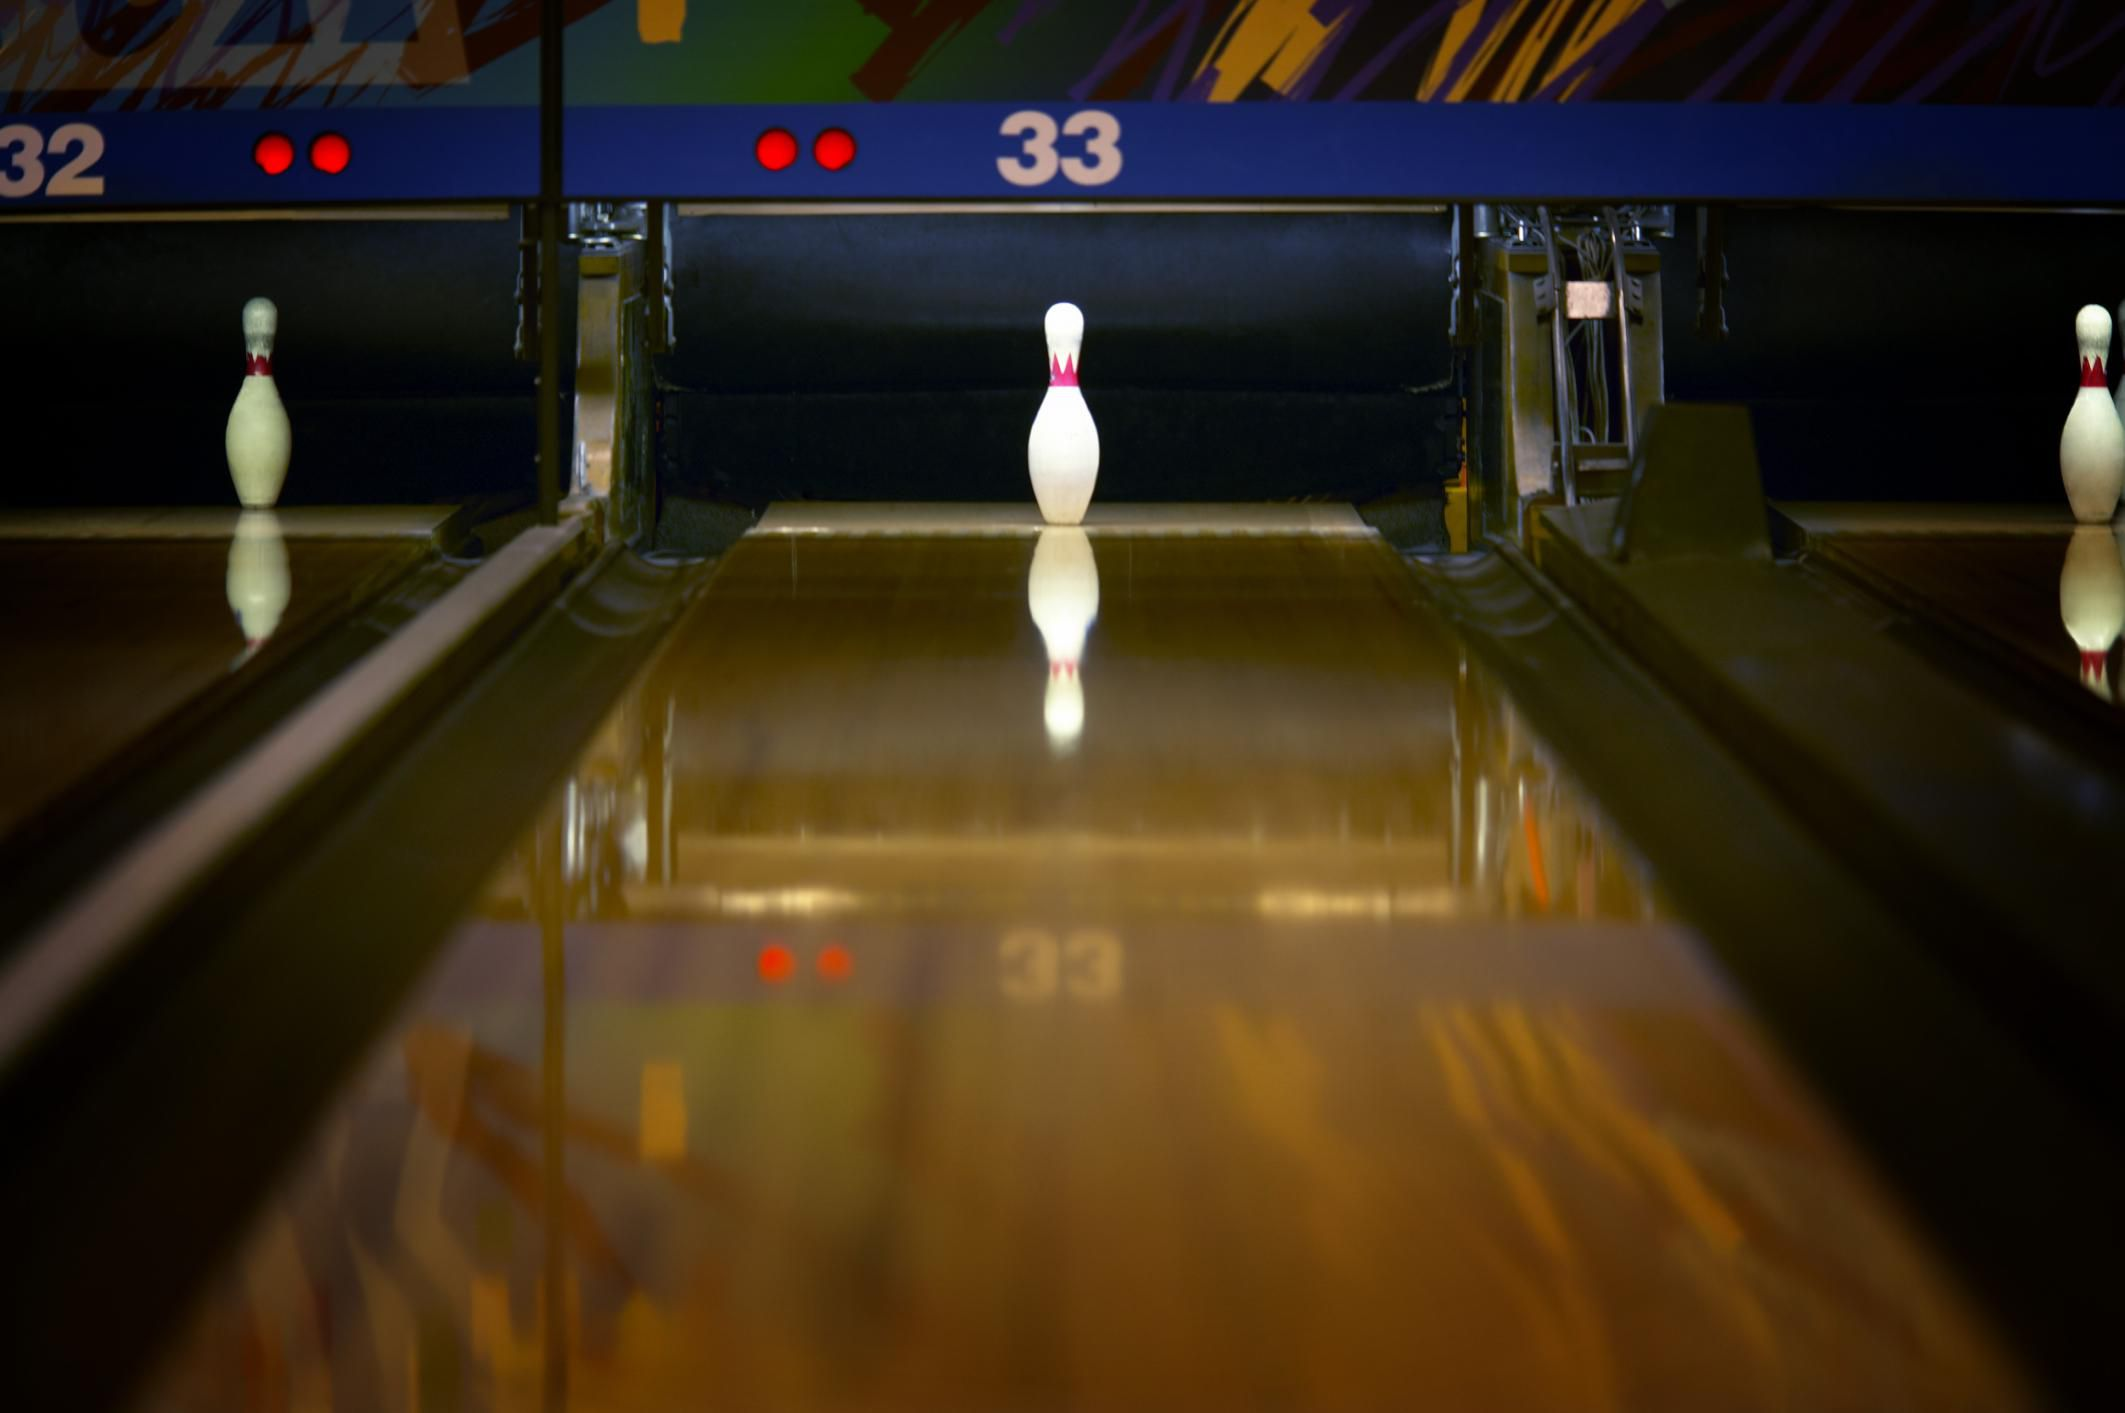 How to Score a Game of No-Tap Bowling